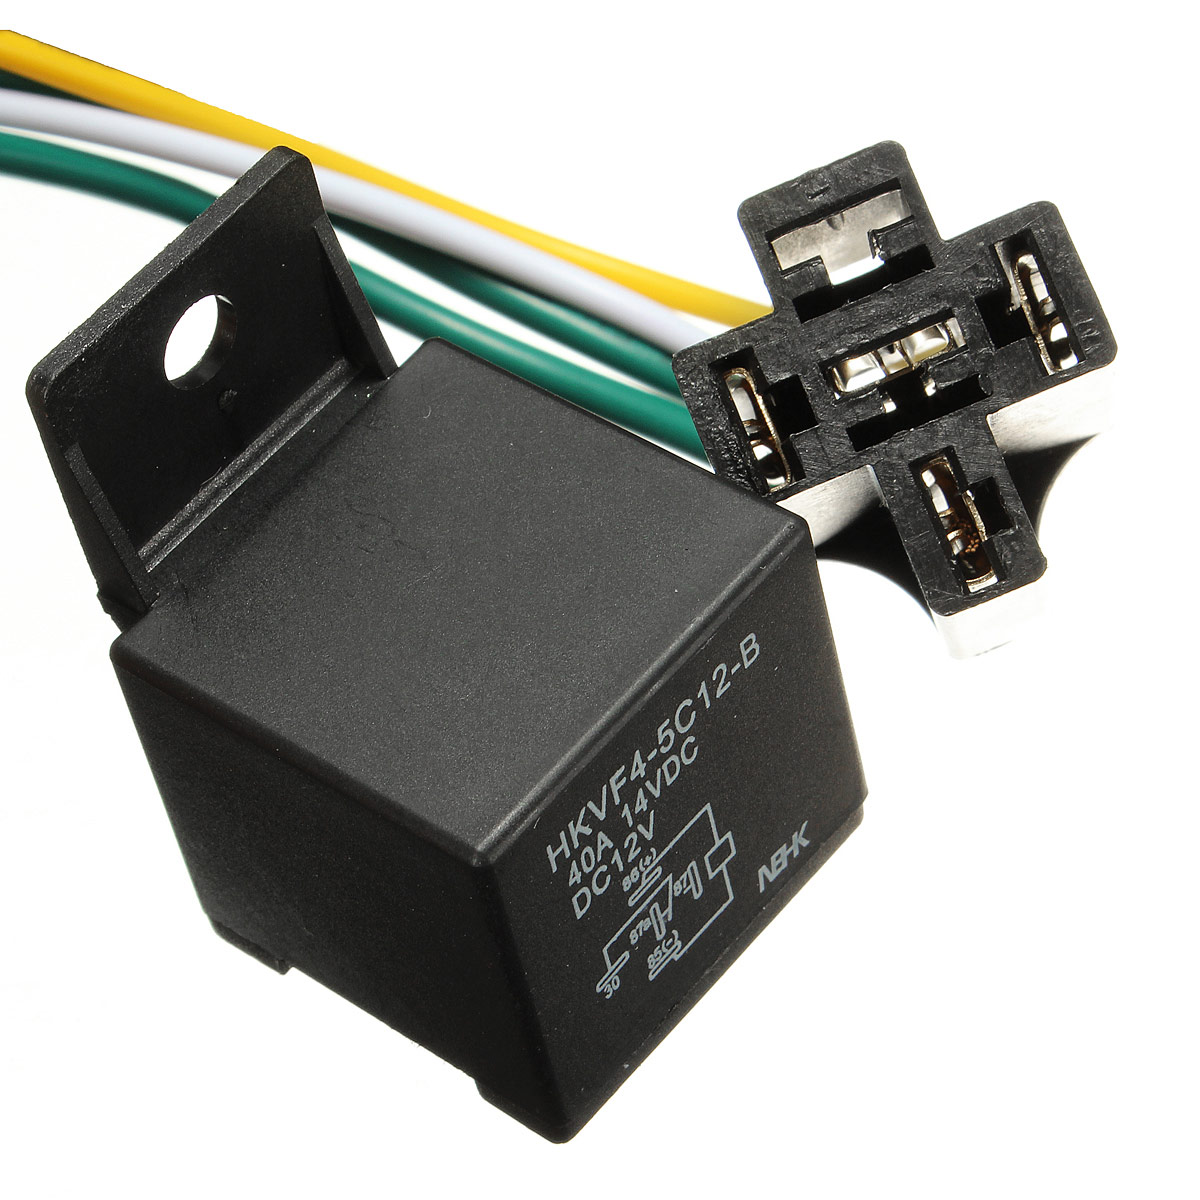 Buy Automotive Car Power Relay 12v 12 Volt Dc 40a Amp Harness Socket 4 Pin Wire Motorcycle In Hk Hong Kong For C 199